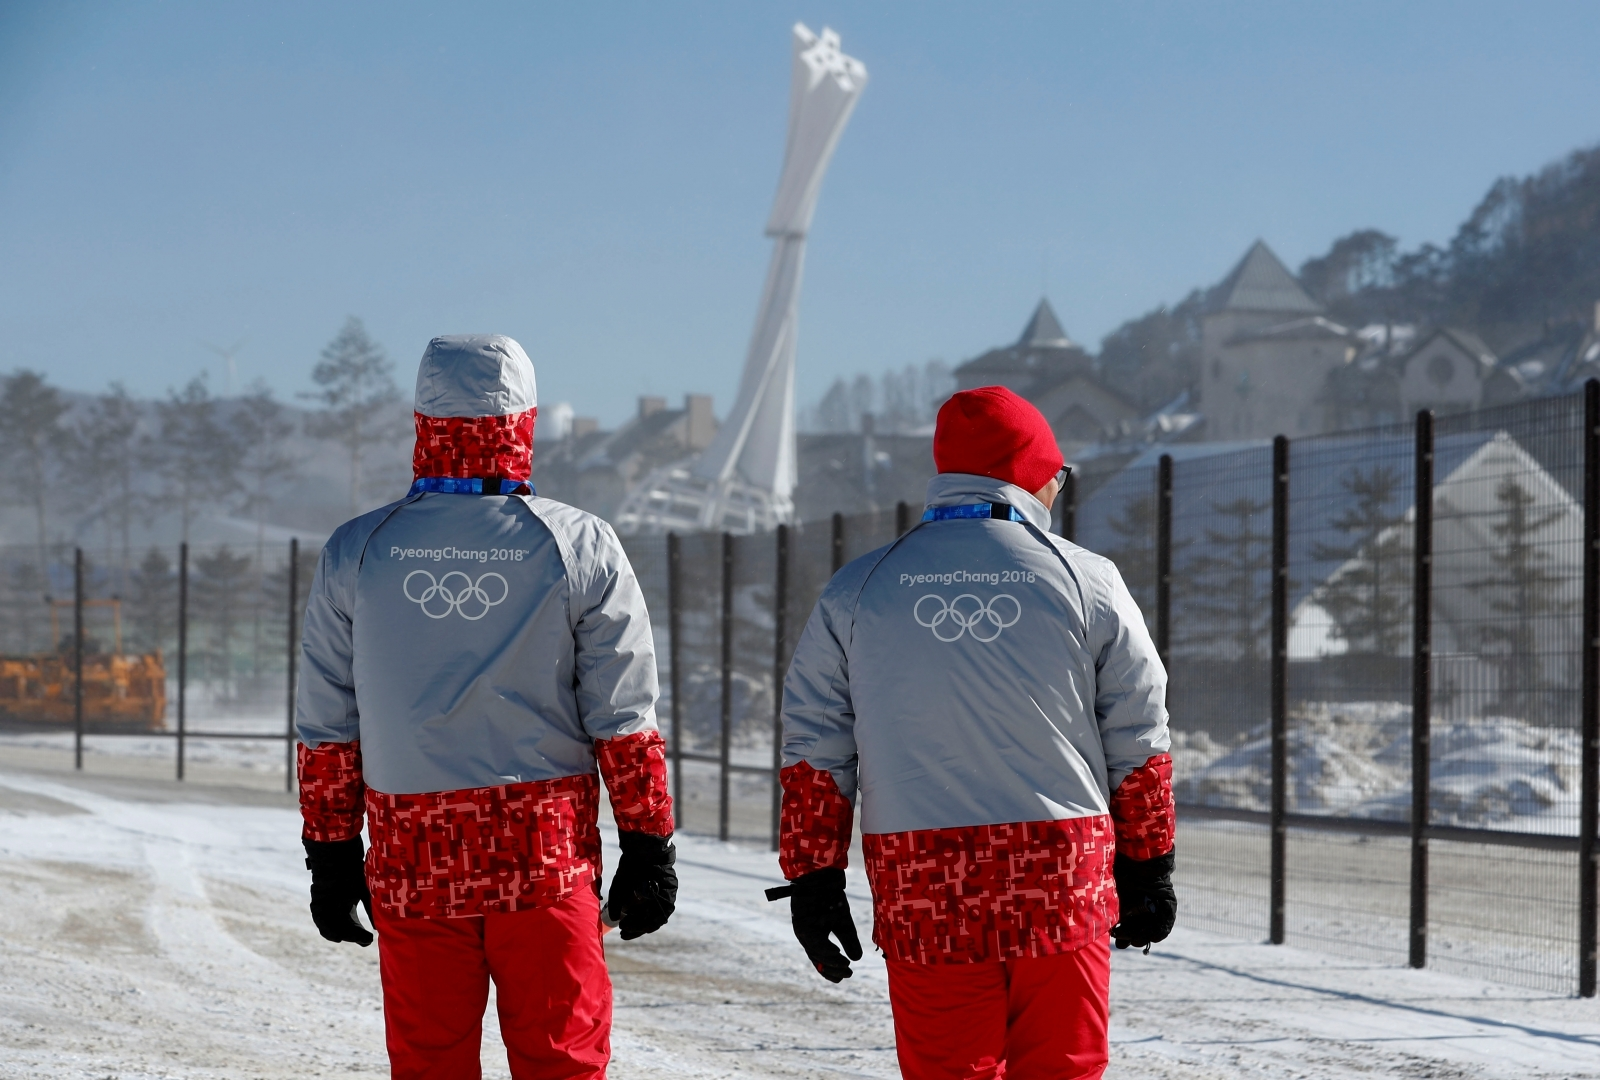 North Korea in Winter Olympics